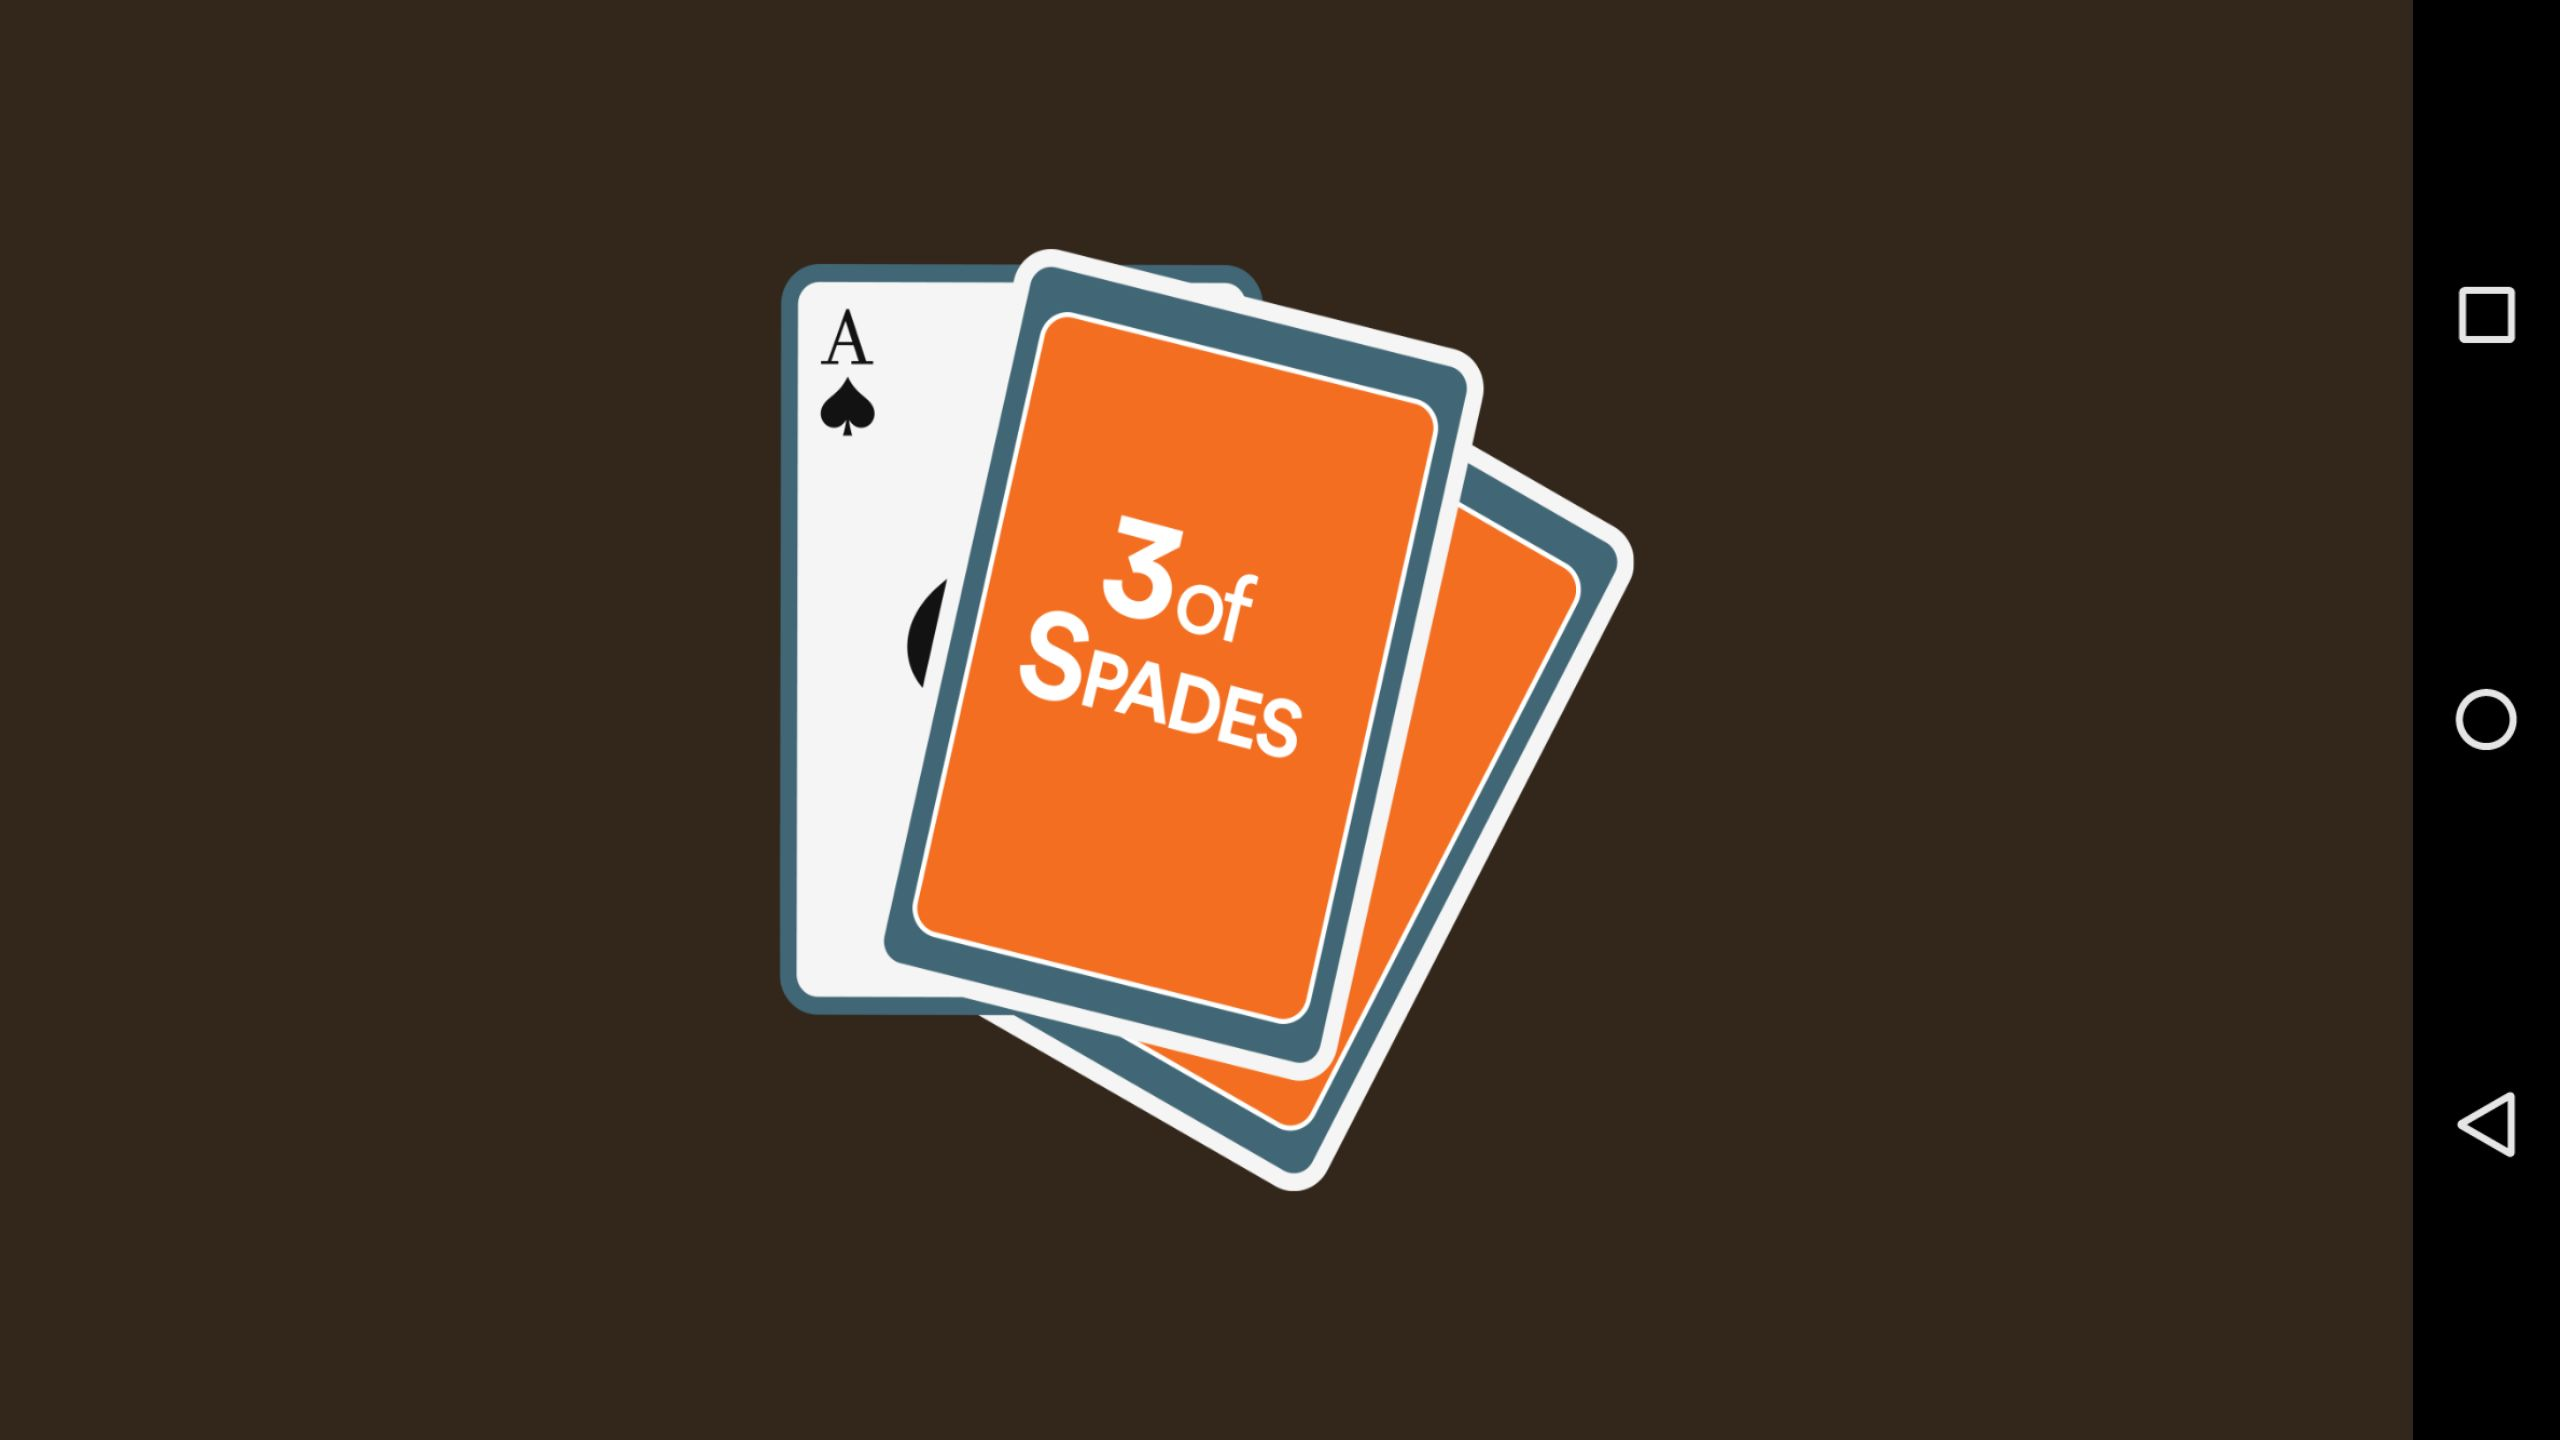 3 Of Spades Android Source Code Screenshot 11